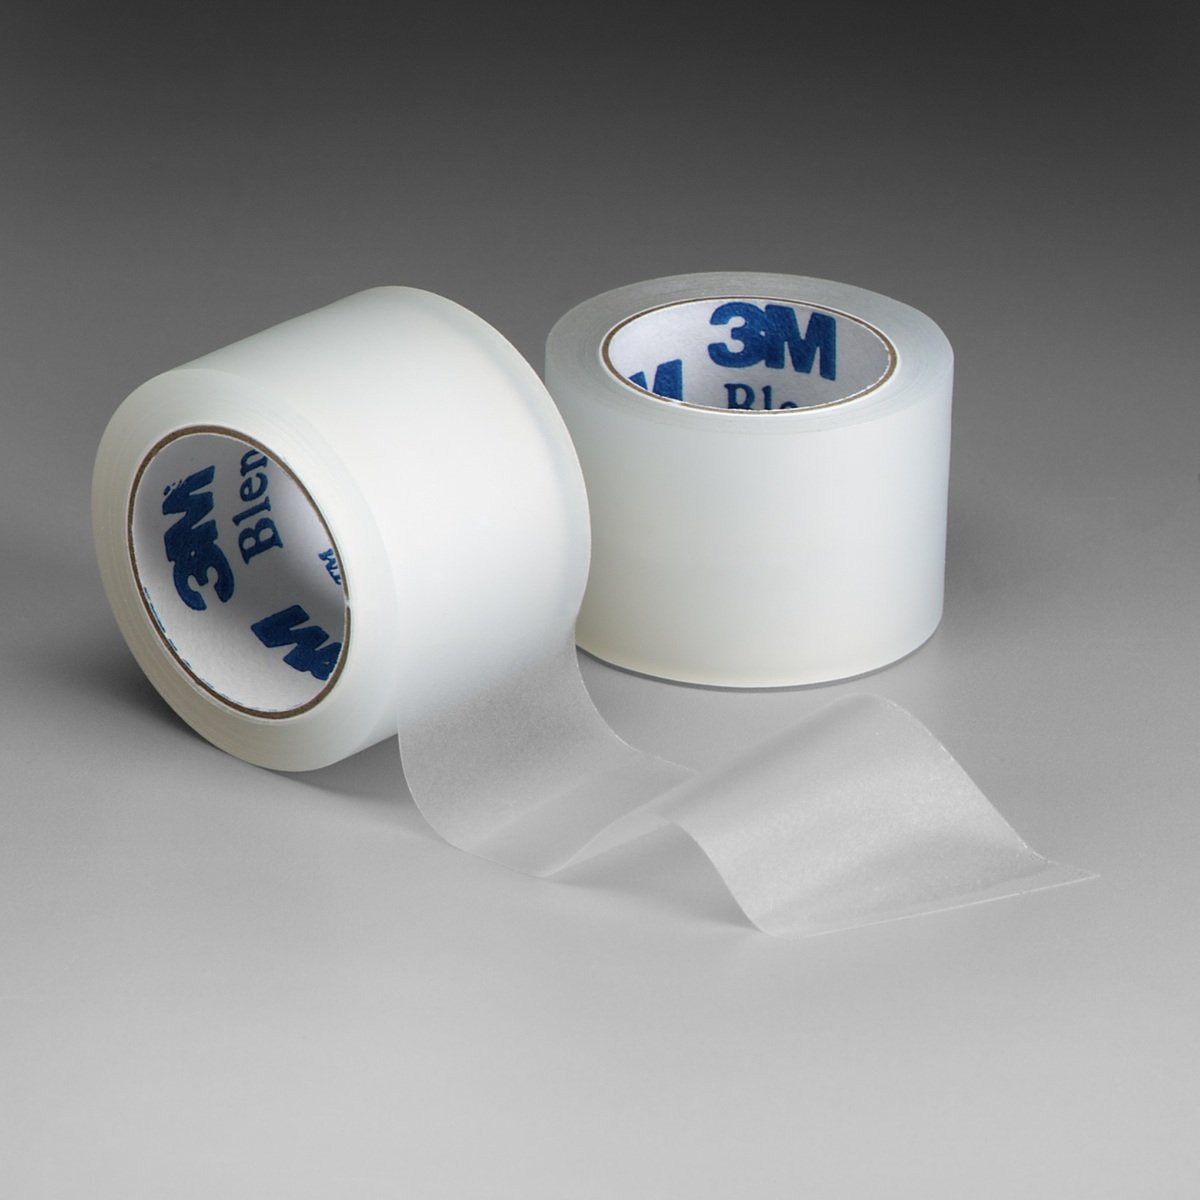 3M™ Blenderm Surgical Tape 1""